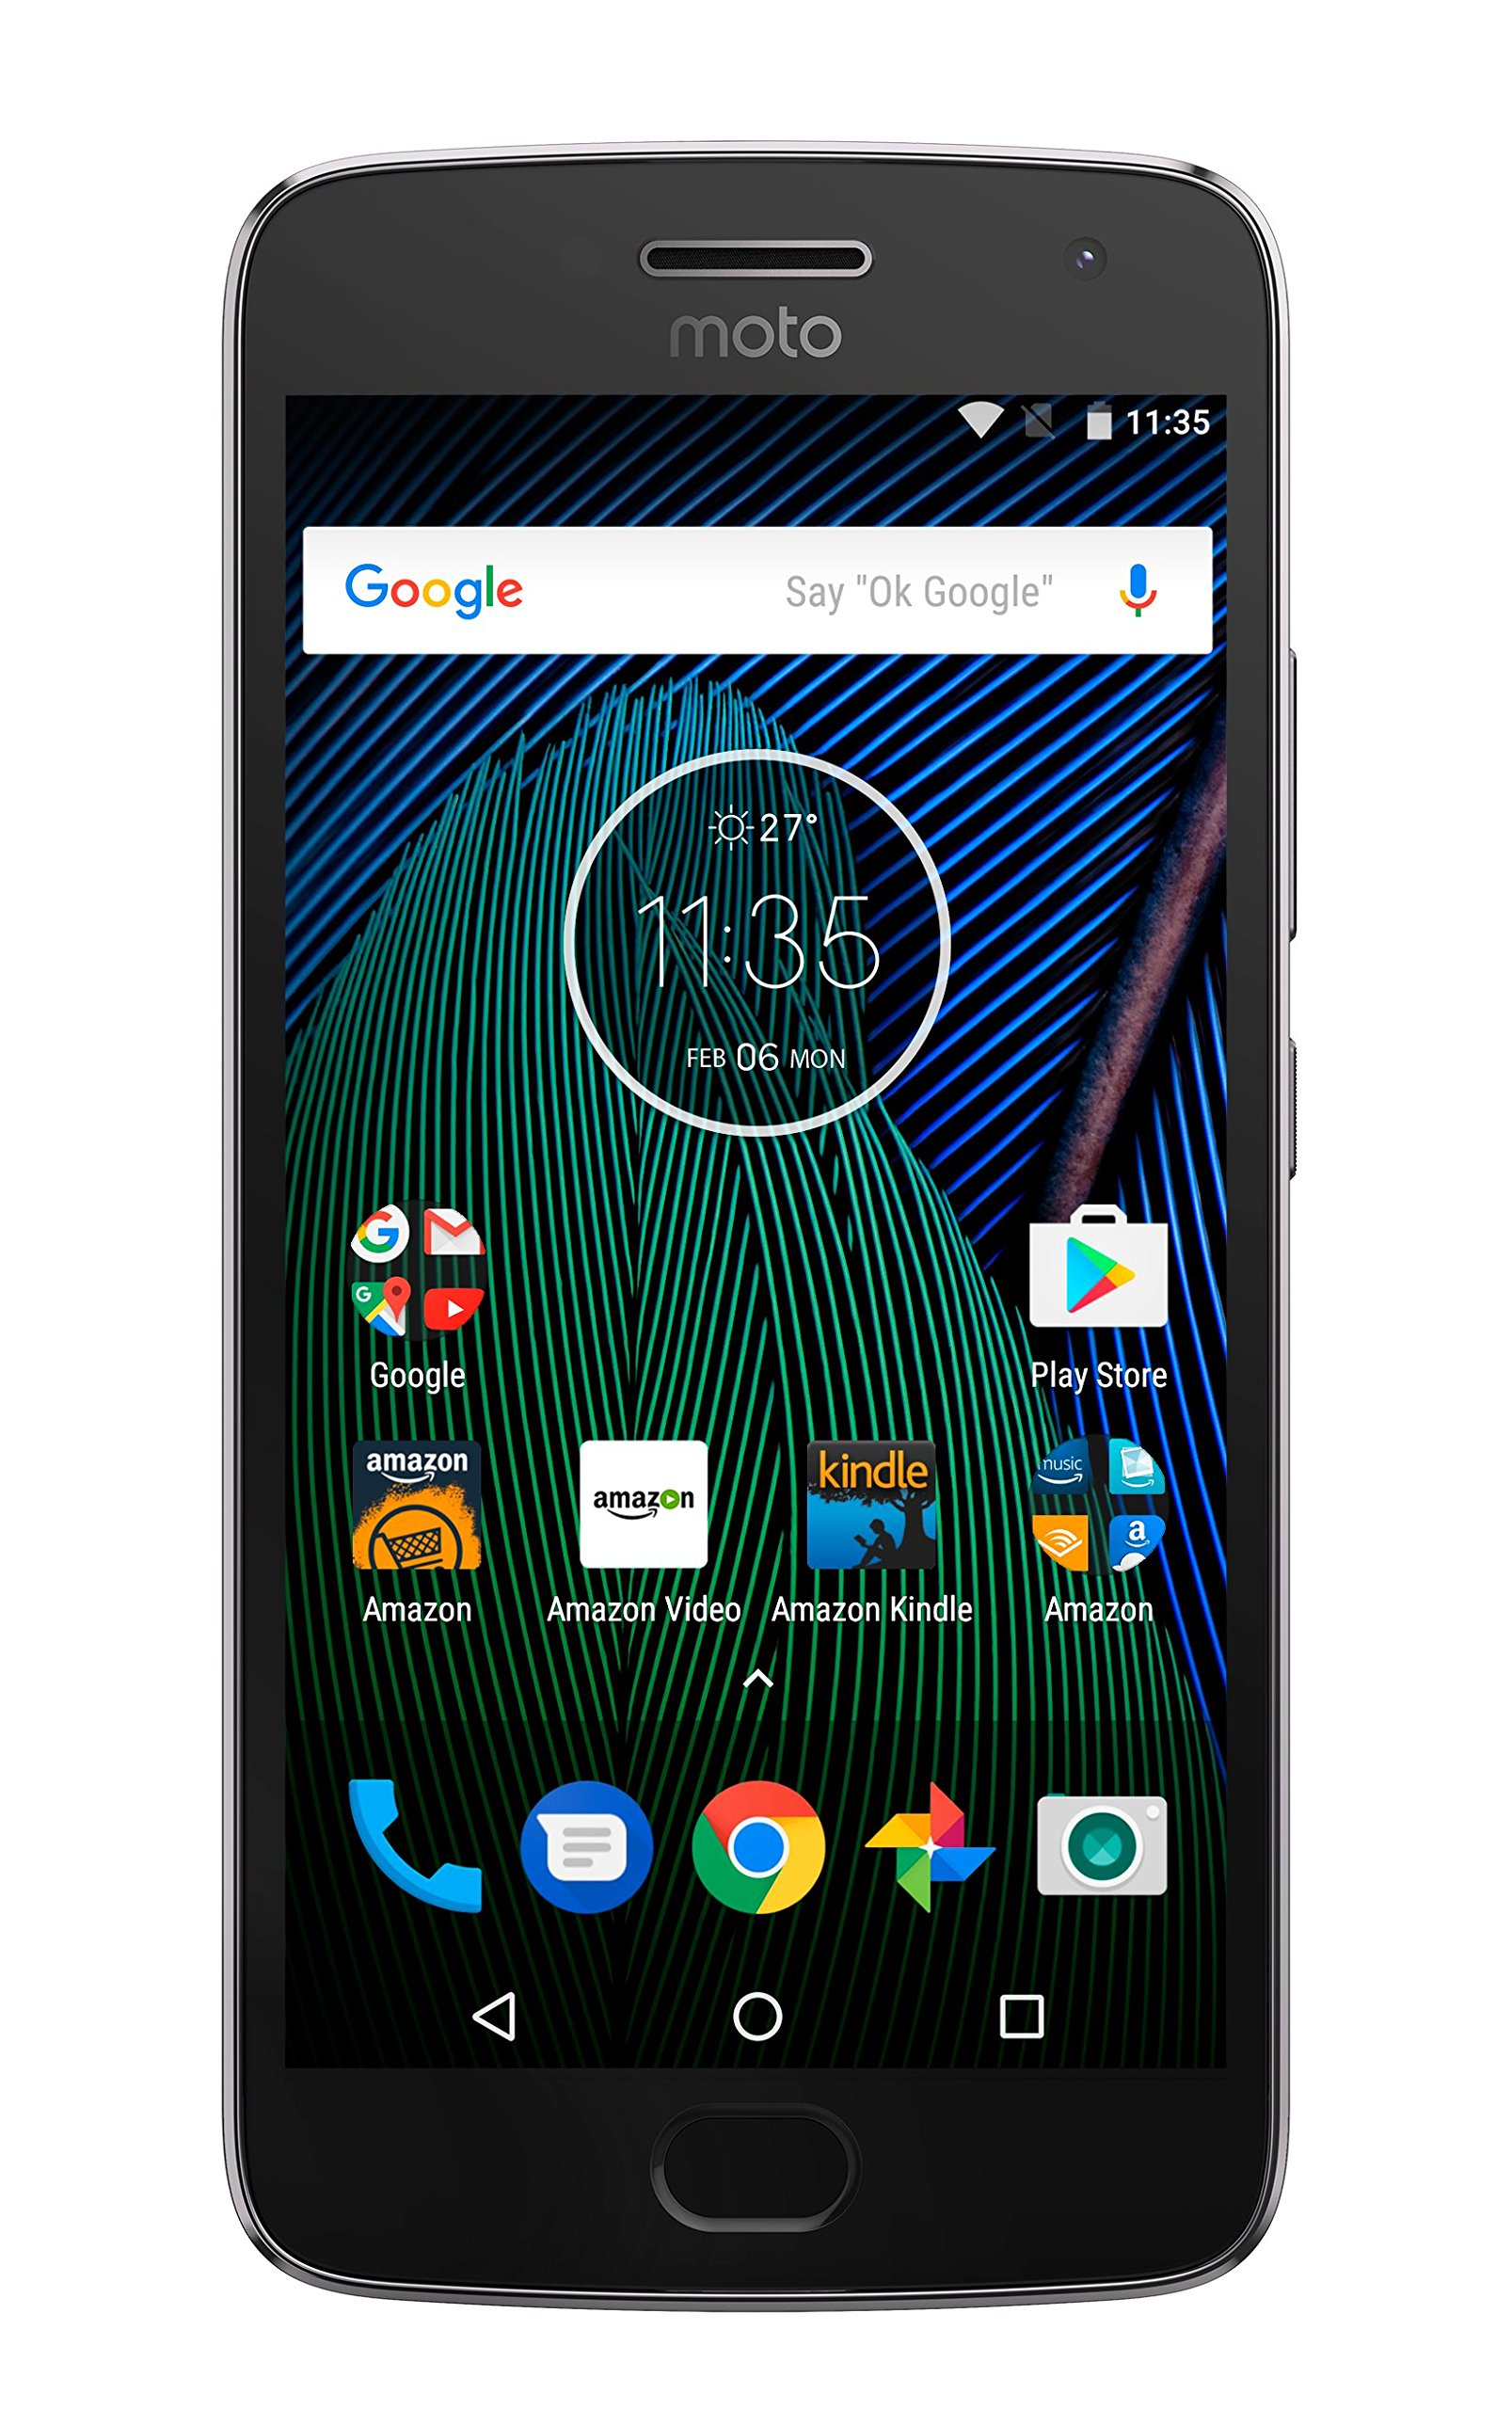 Moto G Plus (5th Generation) - Lunar Gray - 64 GB - Unlocked - Prime Exclusive - with Lockscreen Offers & Ads